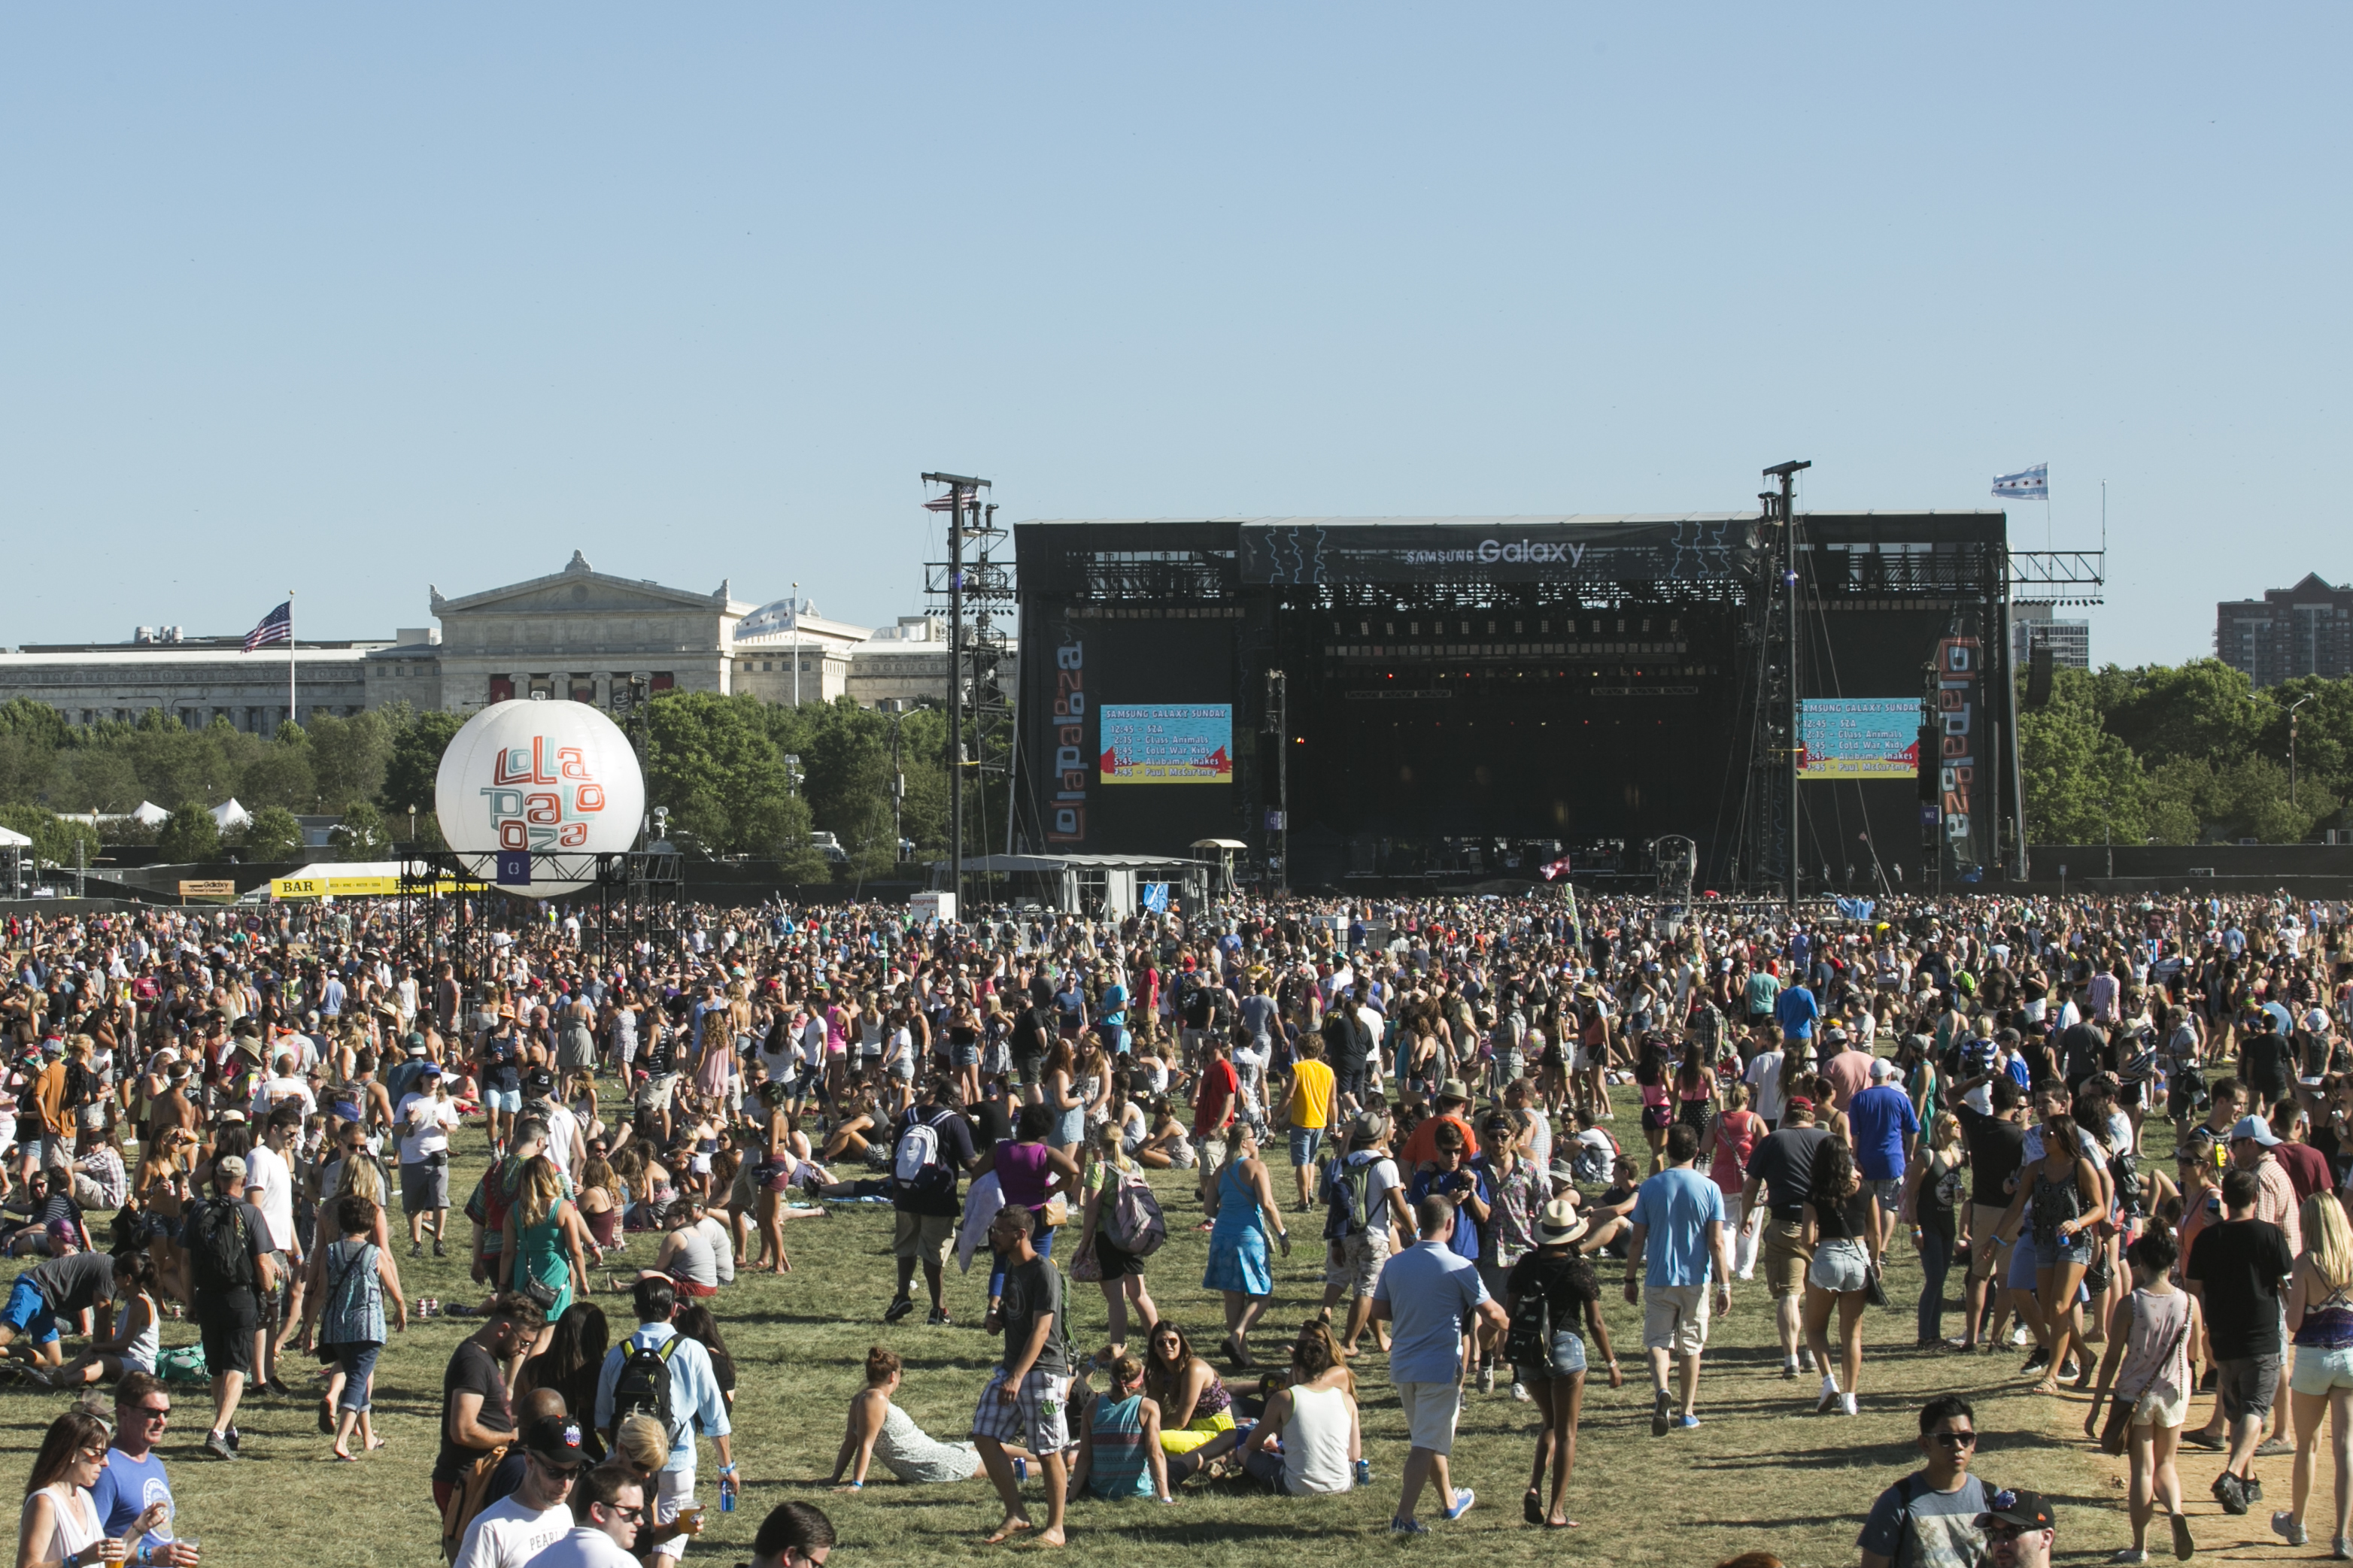 Festival-goers crowd into Grant Park on day one of Lollapalooza on July 31, 2015.